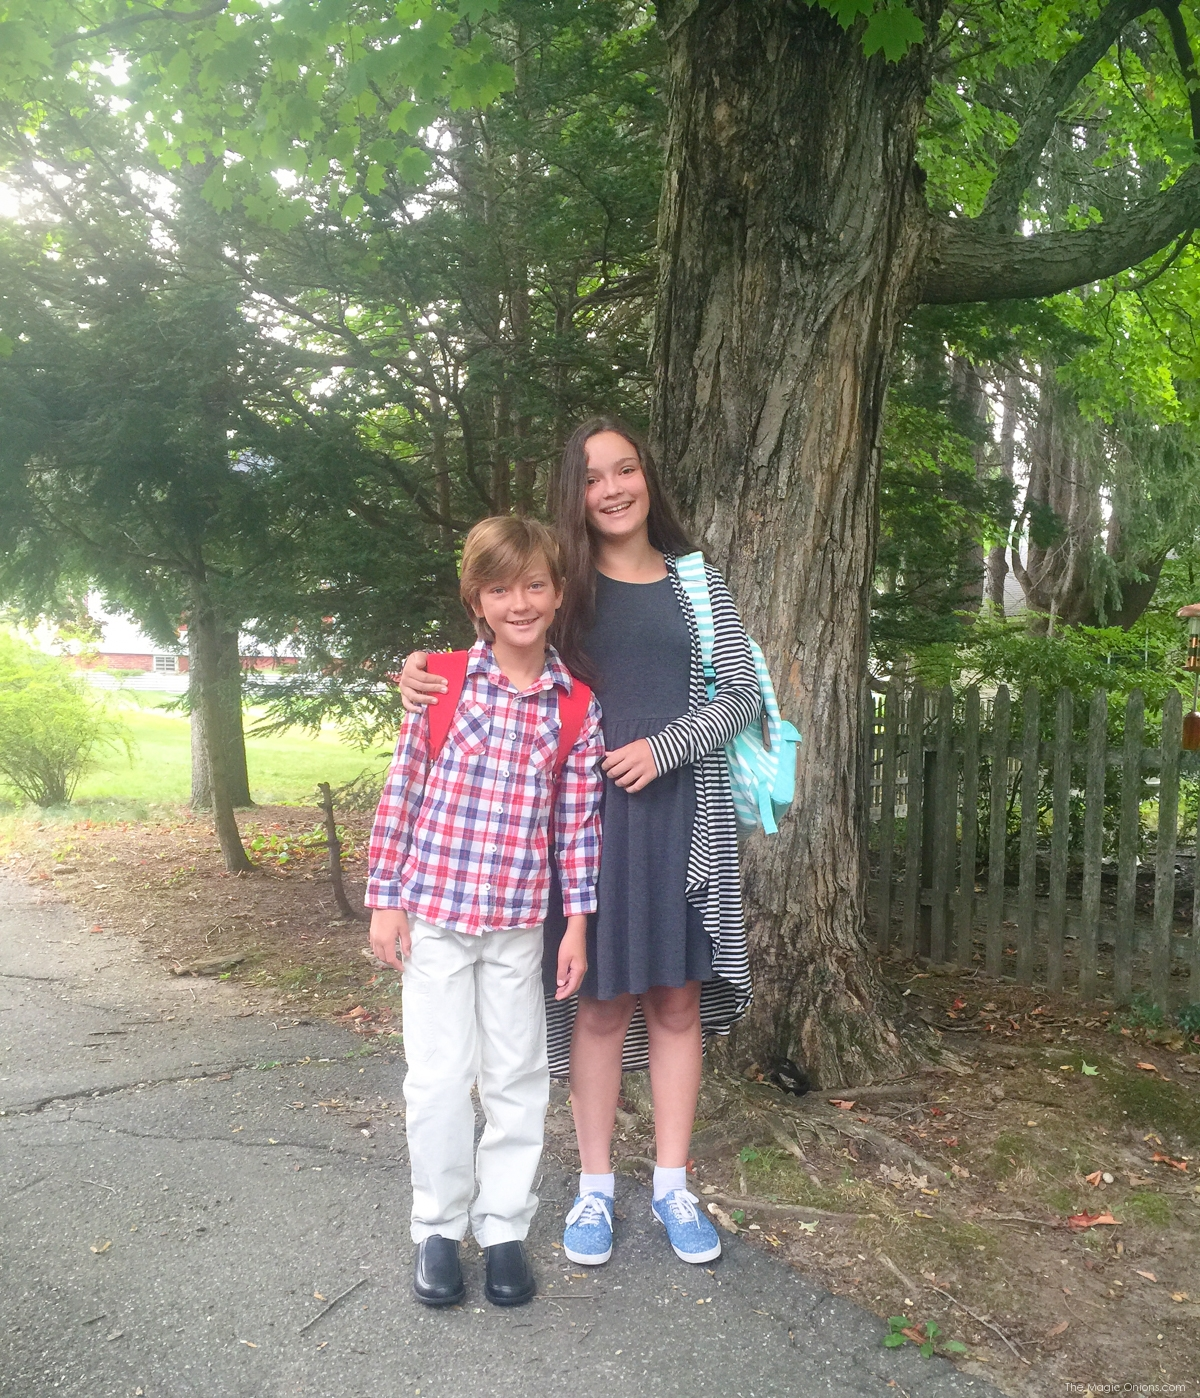 First Day Of Monadnock Waldorf School, Keene, New Hampshire, School Photo on The Magic Onions Blog